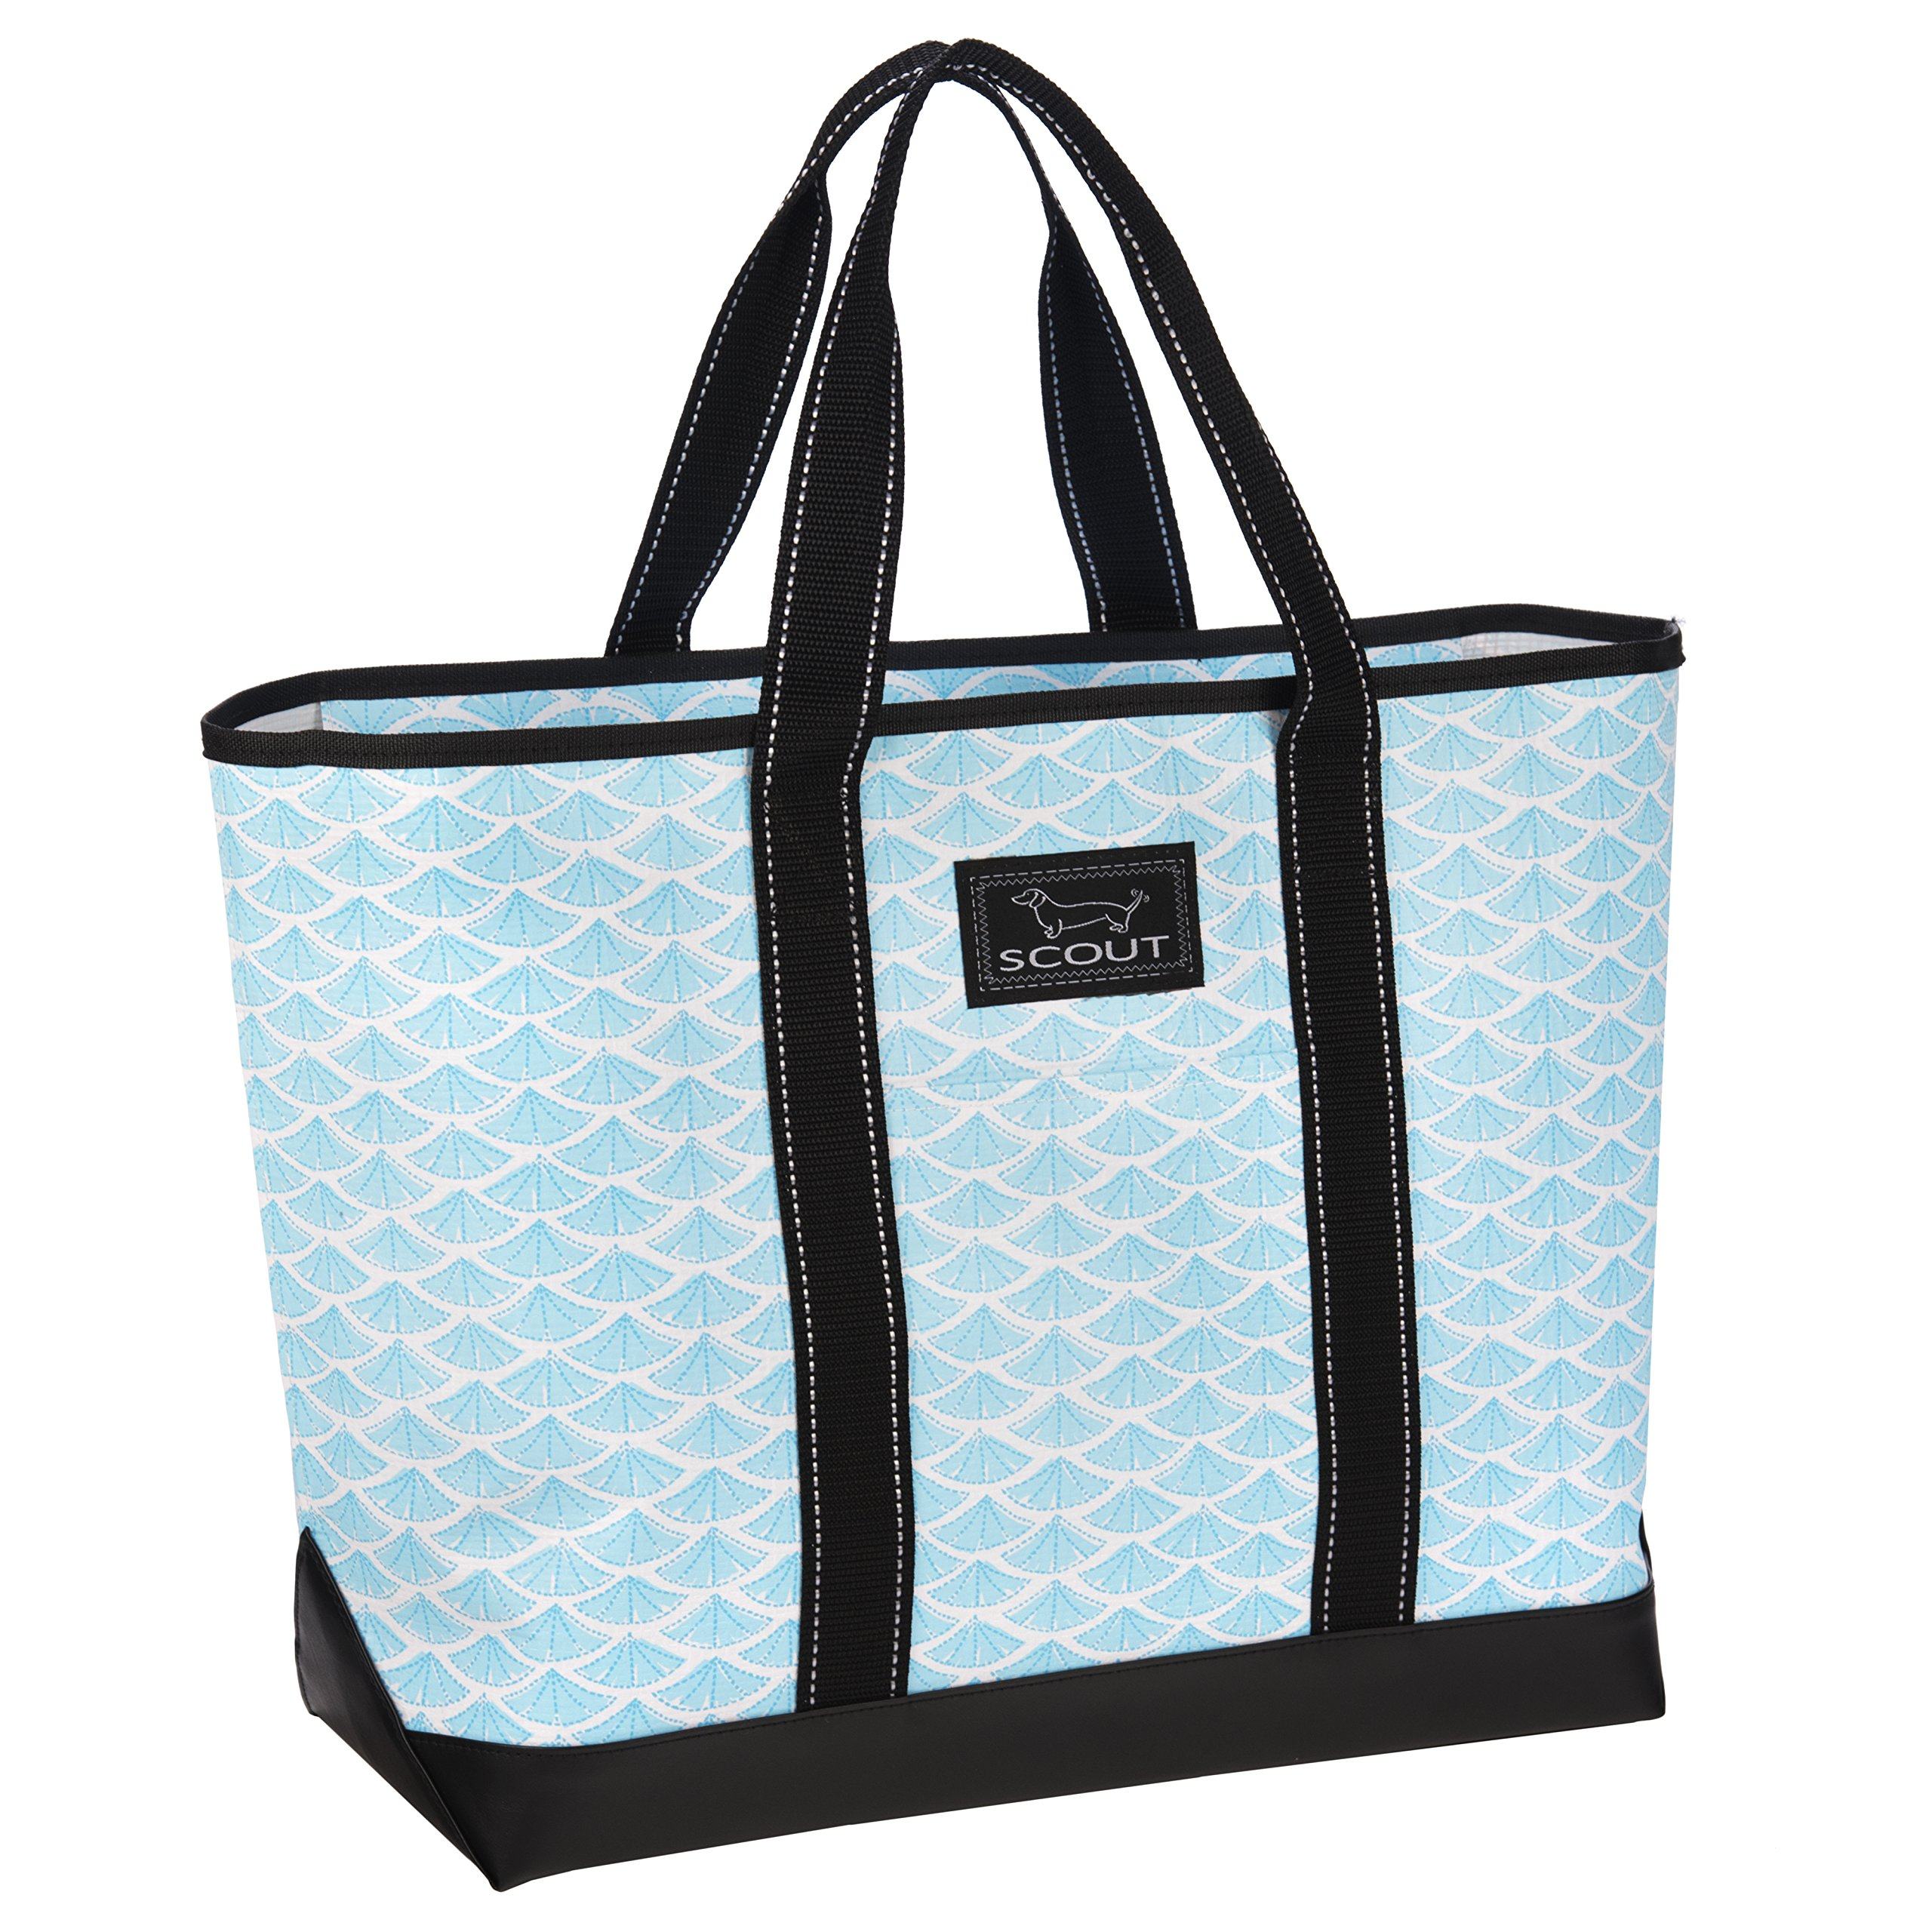 SCOUT Beach Bum Large Tote Bag, For the Beach or Pool, Slim Profile, Folds Flat, Sand and Water Resistant, Zips Closed, Swimfan